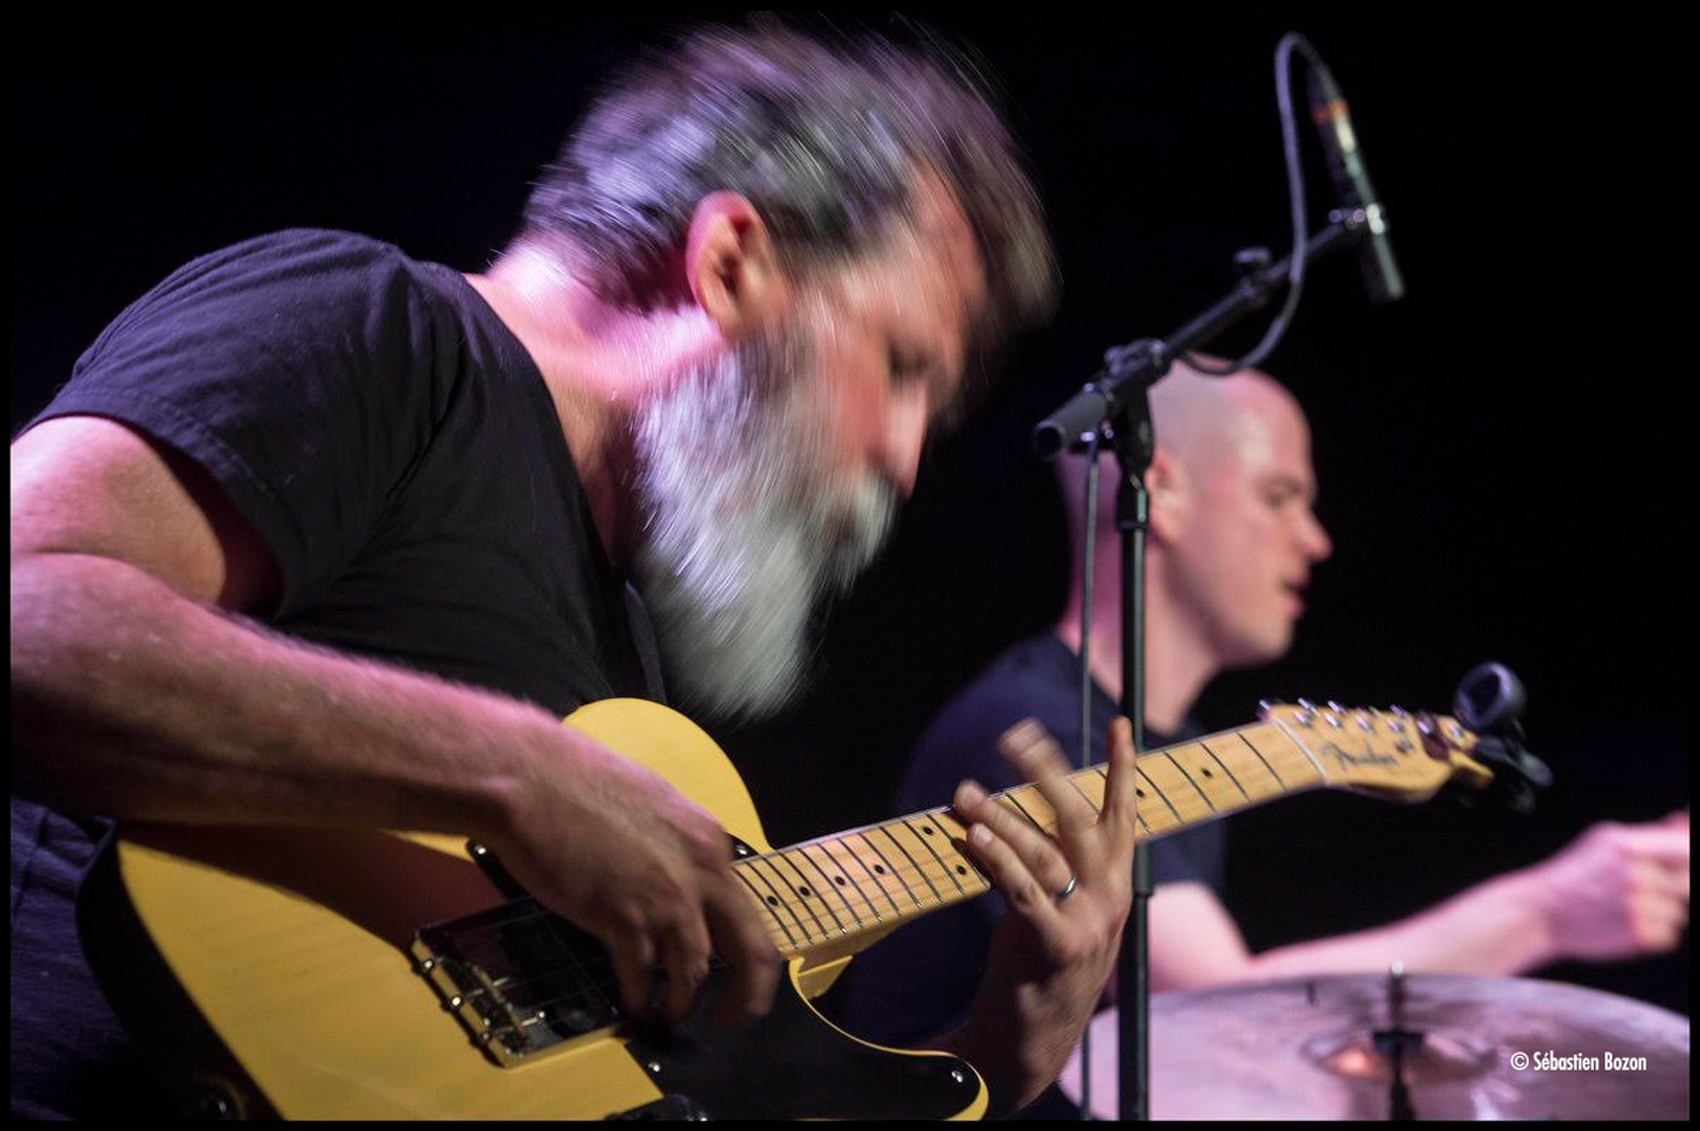 BILL ORCUTT & CHRIS CORSANO ( DUO + SOLO SETS) - CANCELLED DUE TO THE CORONA-COVID19 SITUATION !